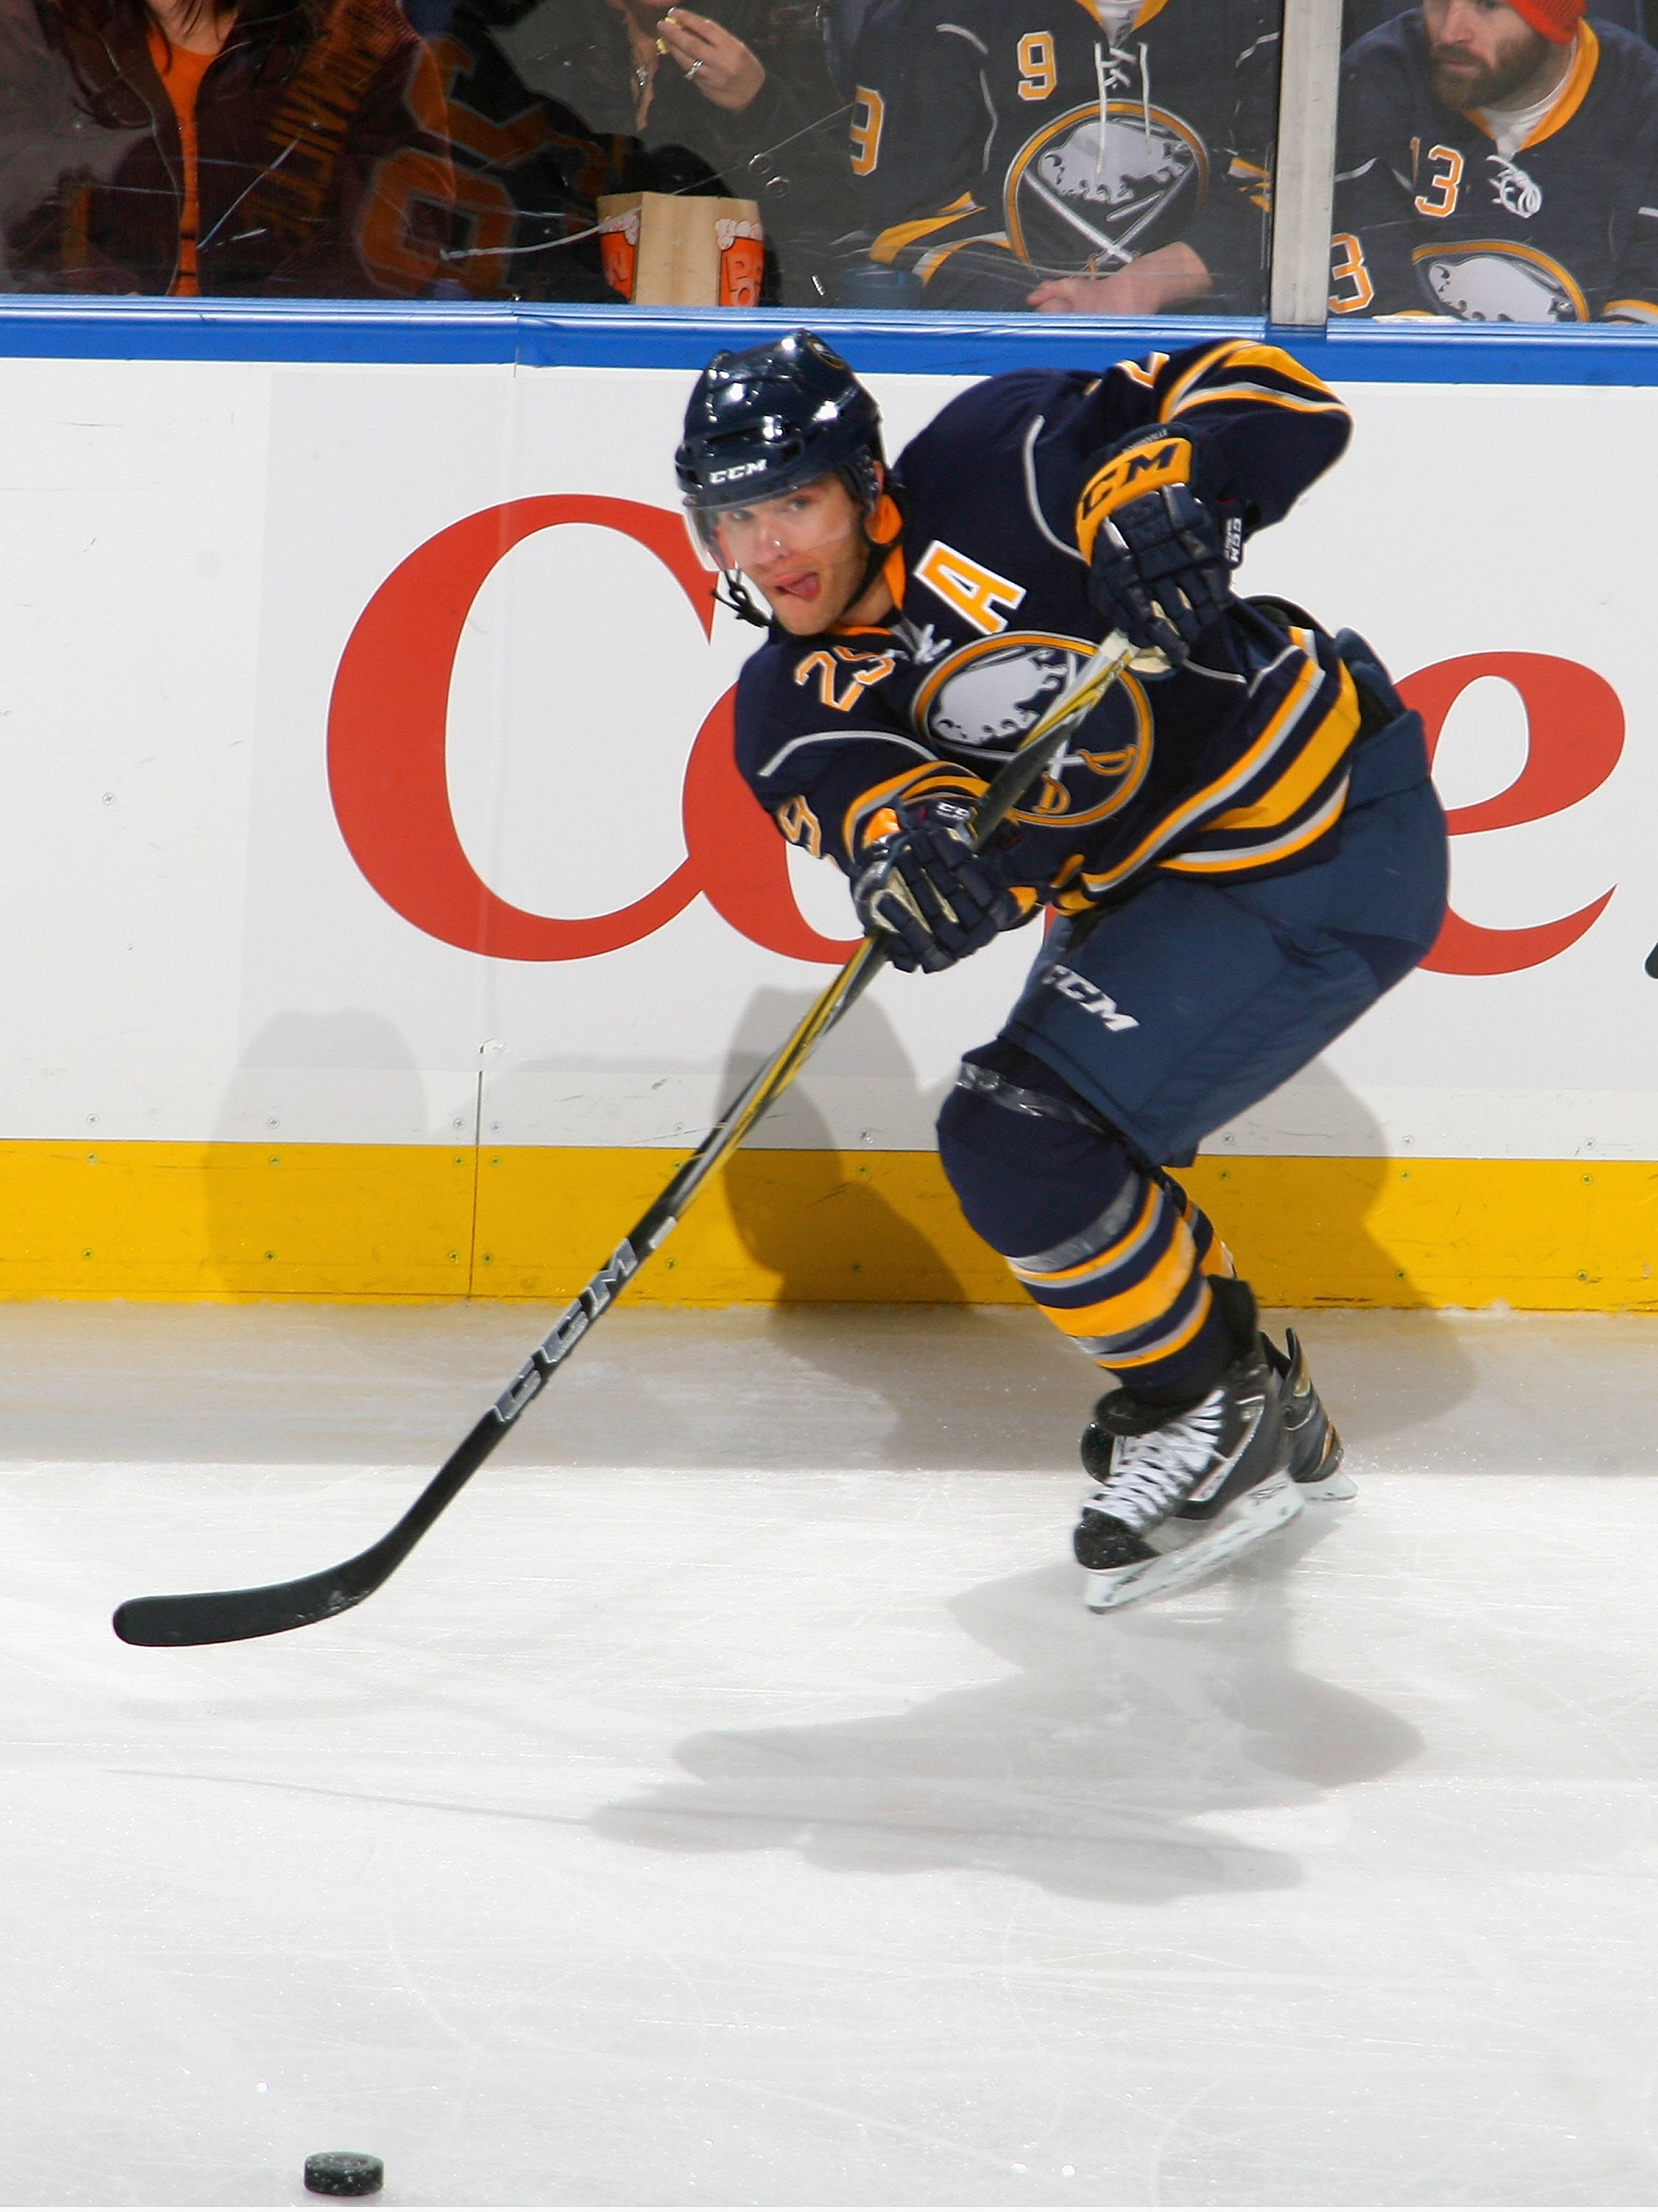 BUFFALO, NY - NOVEMBER 20: Jason Pominville #29 of the Buffalo Sabres makes a pass against the Tampa Bay Lightning at HSBC Arena on November 20, 2010 in Buffalo, New York.  (Photo by Rick Stewart/Getty Images)